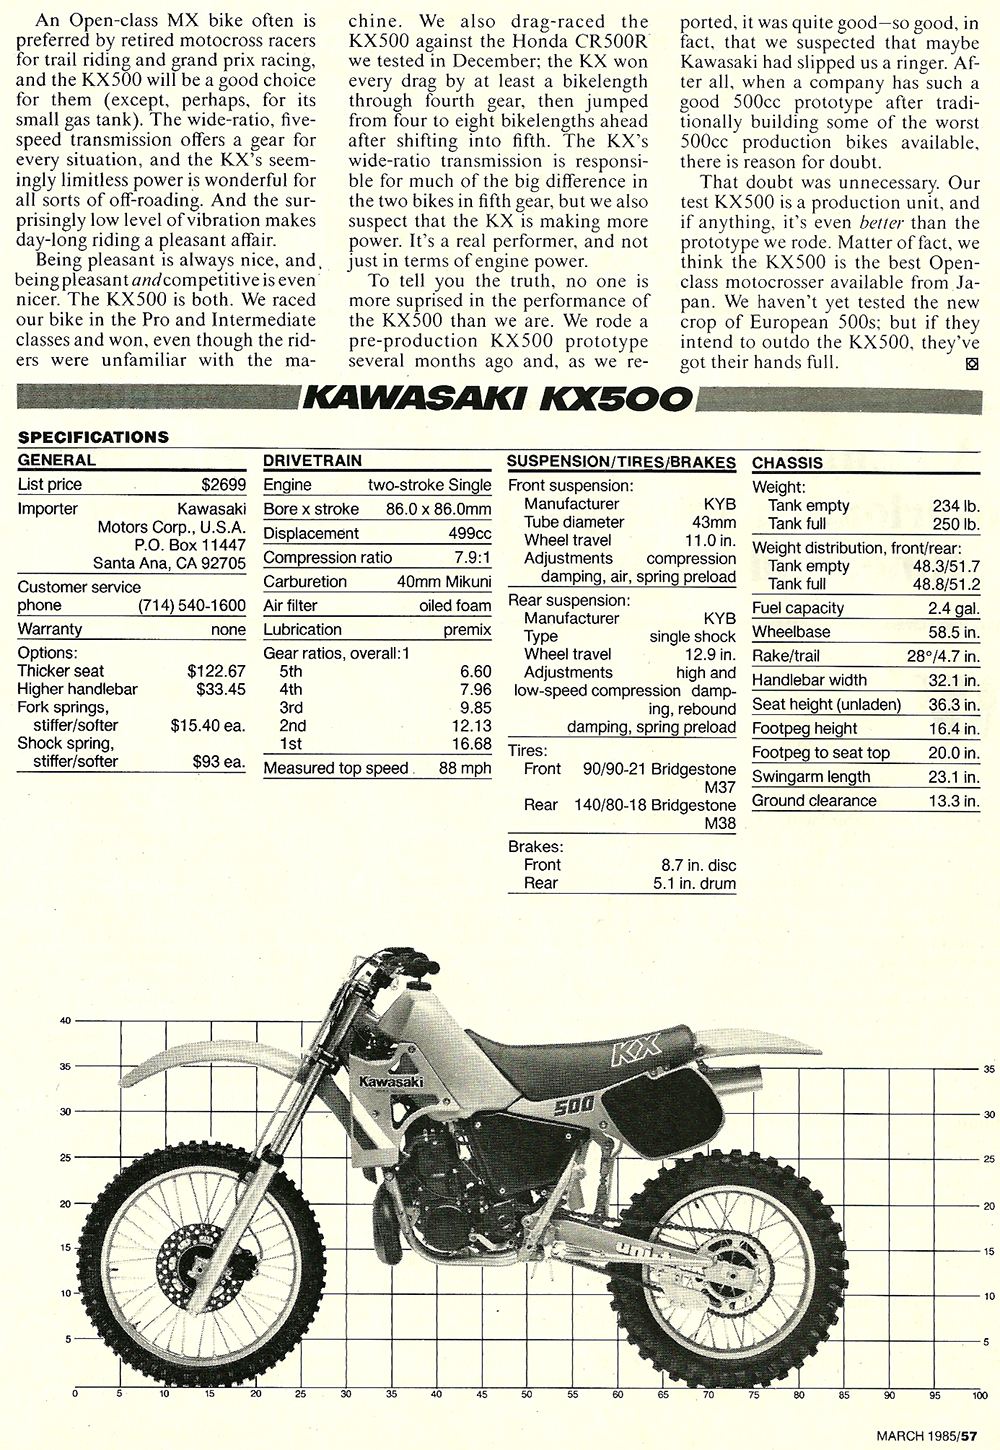 1985 Kawasaki KX500 road test 06.jpg